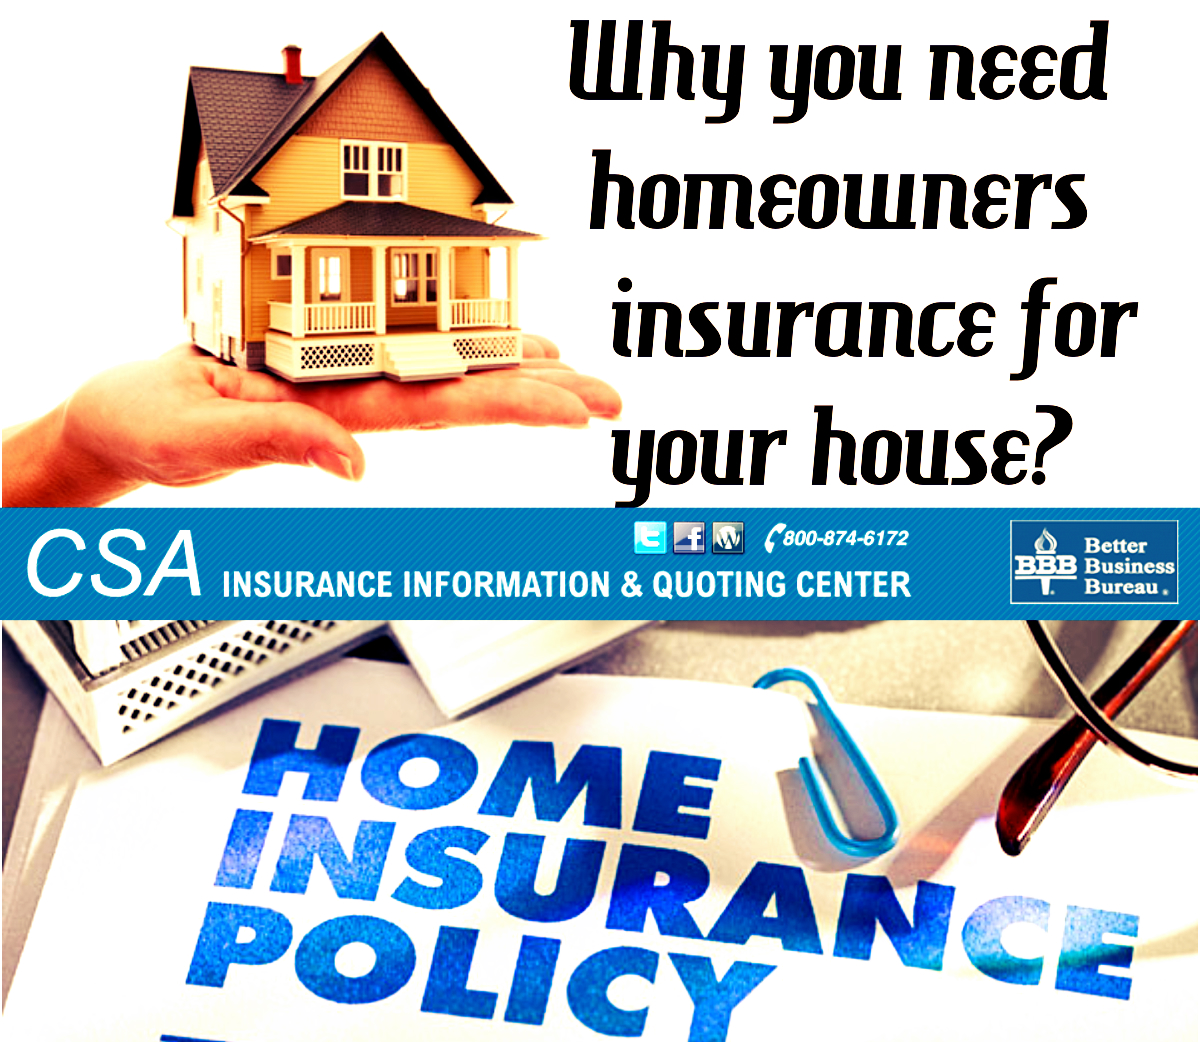 Home Auto Insurance Quotes Online: NY Insurance Company,Auto Insurance & Home Insurance